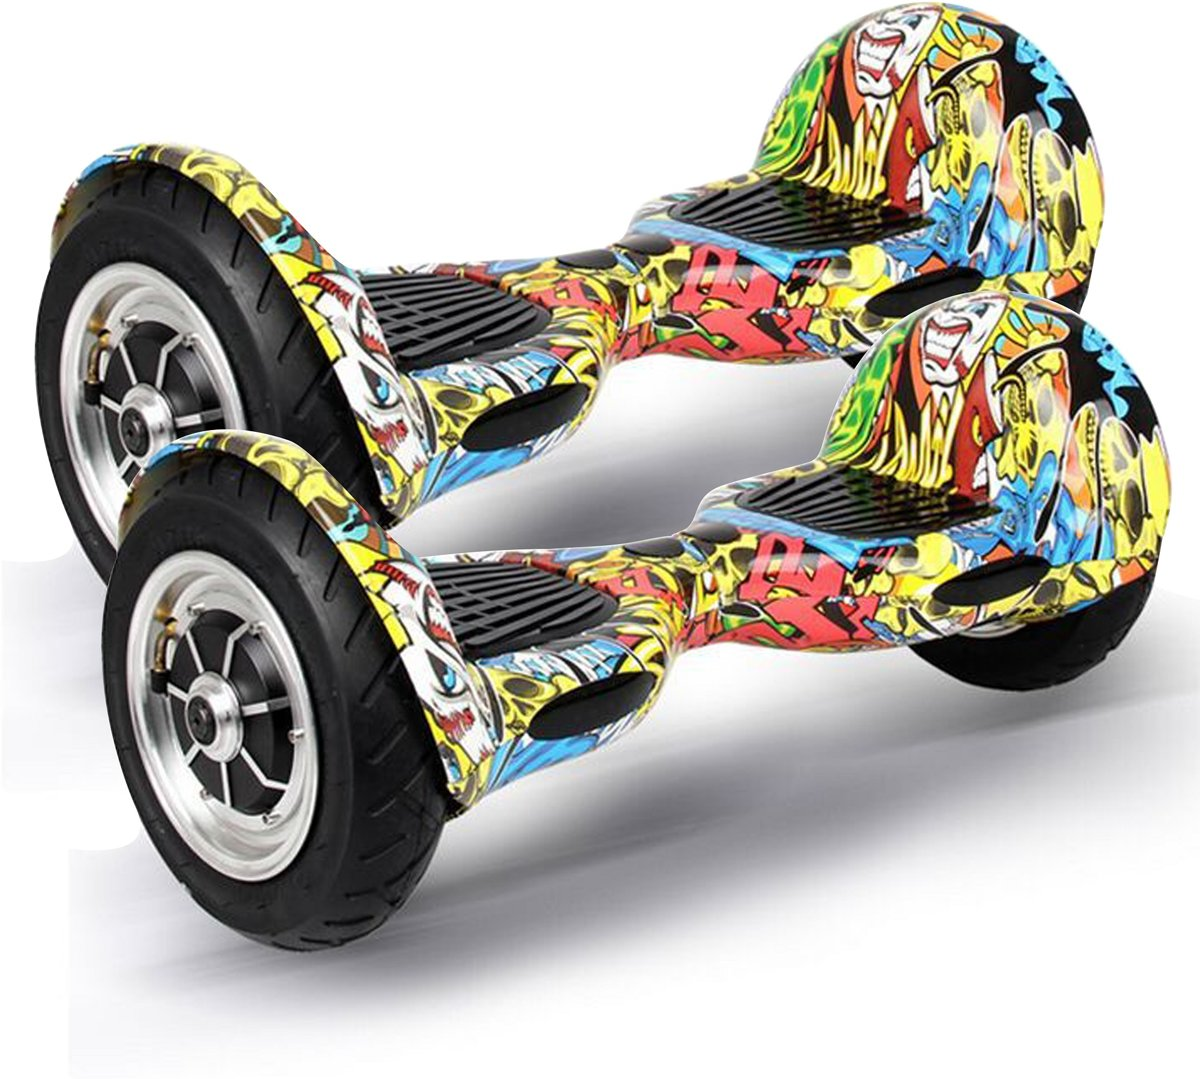 The Scootershop HOVERBOARD 10inch Luchtbanden 700W GRAFFITI Samsung 20cell accu, TaoTao Print